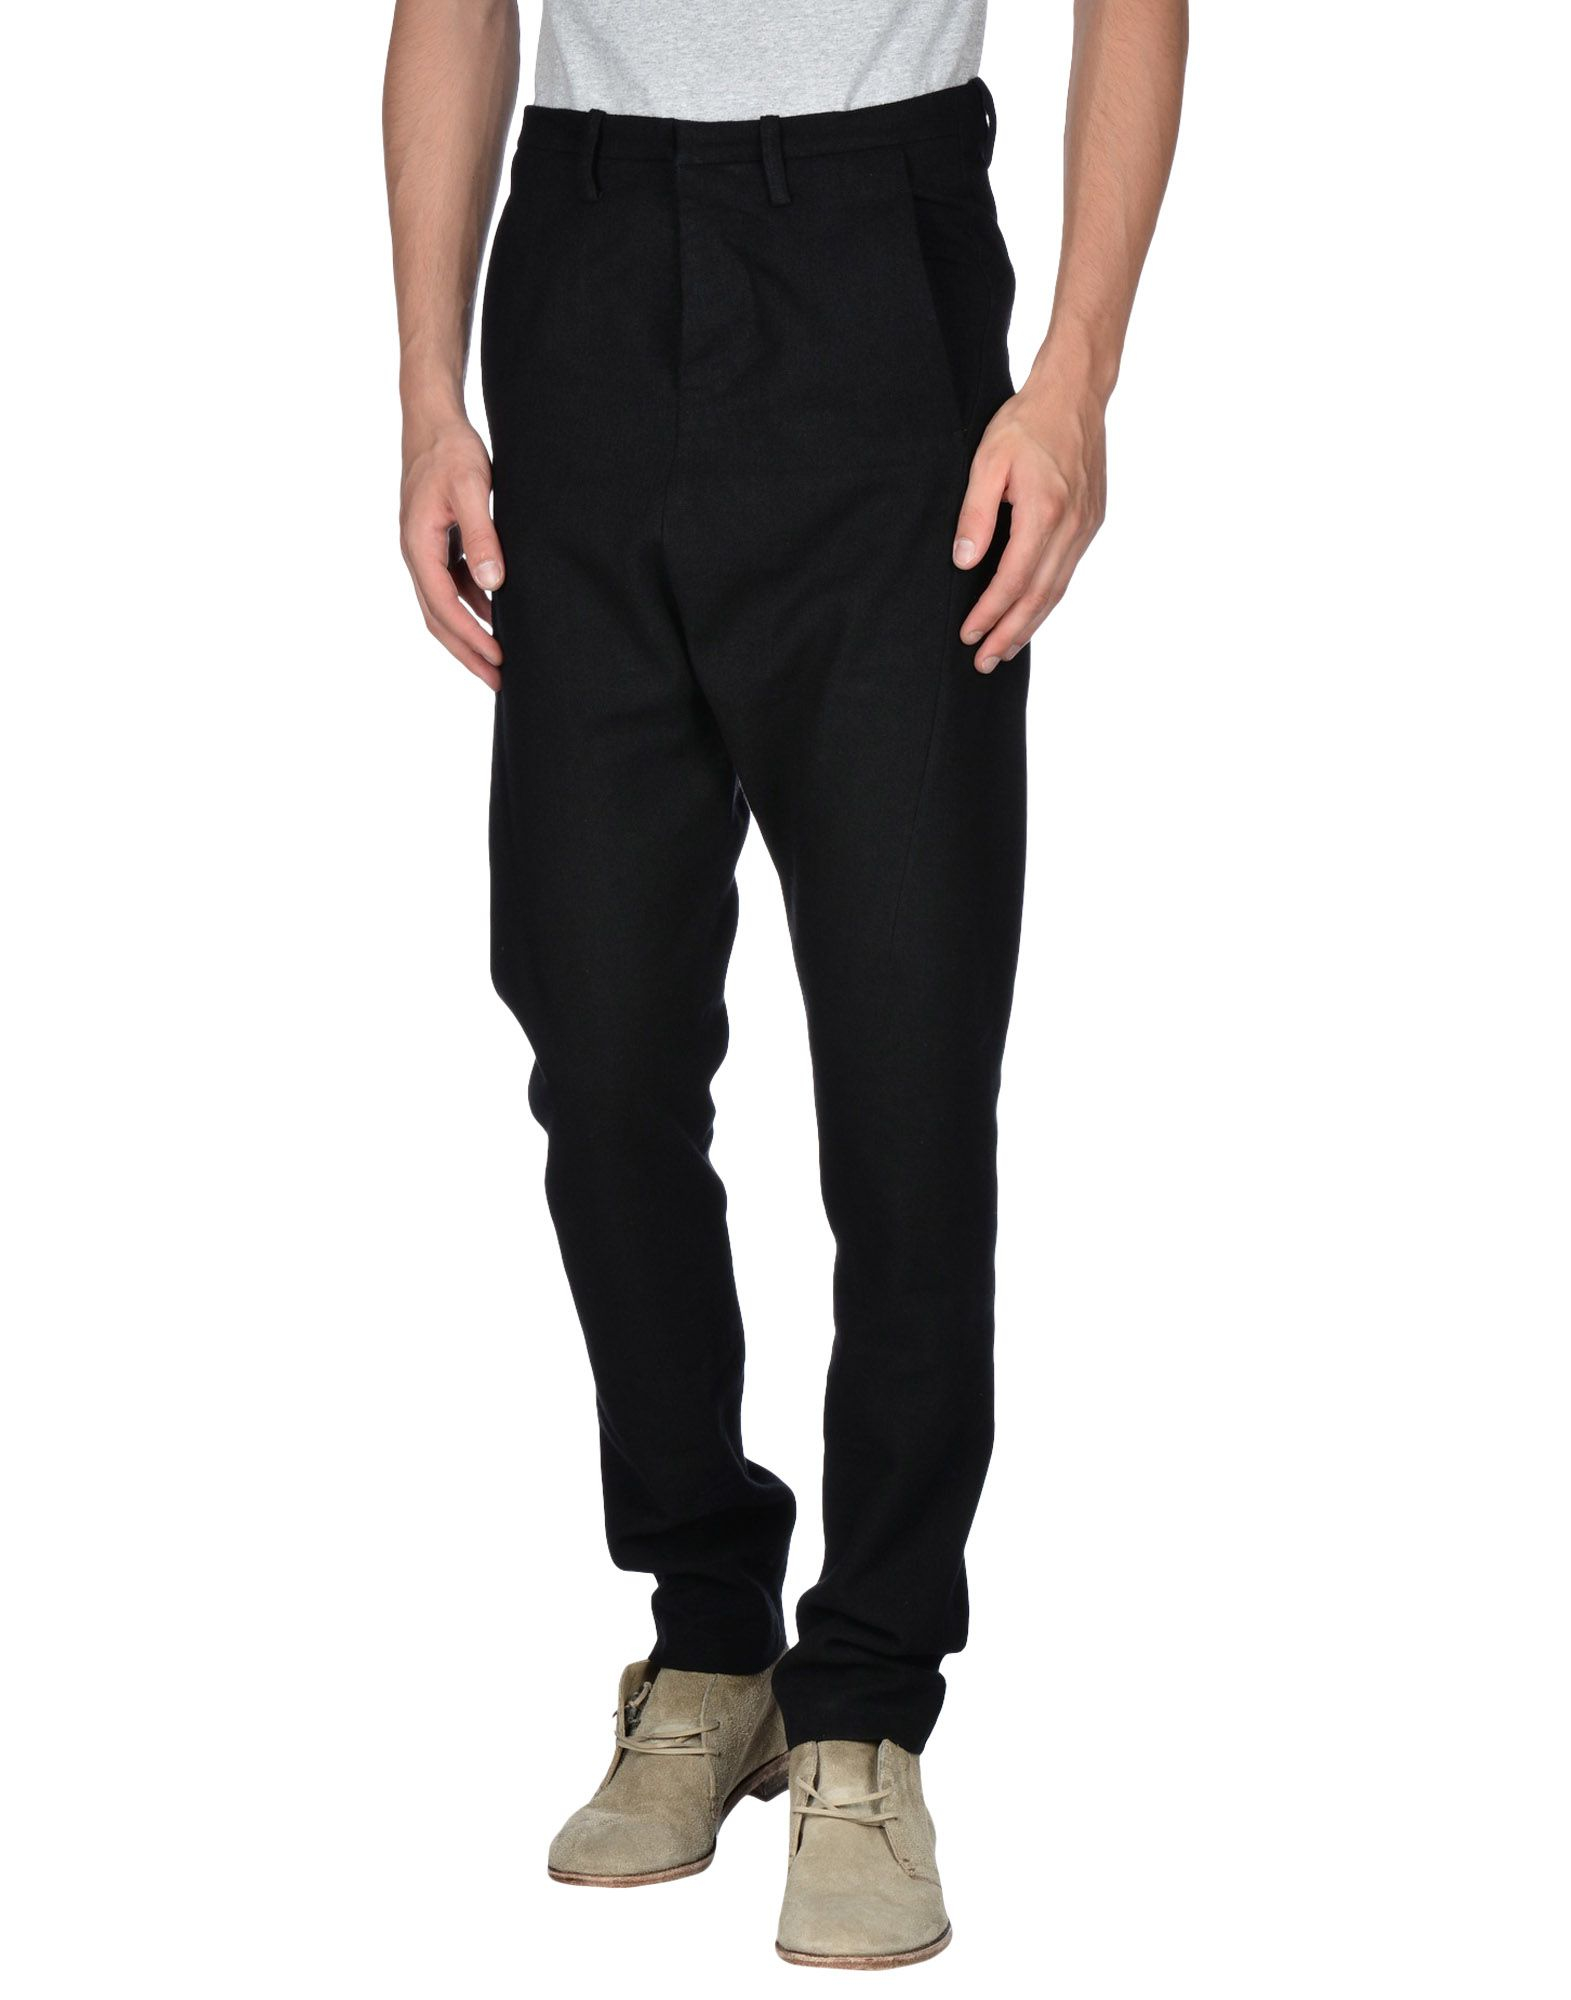 TROUSERS - Casual trousers Lumen Et Umbra Looking For Sale Online Discount New Arrival Low Price Sale 6pV6hNQN